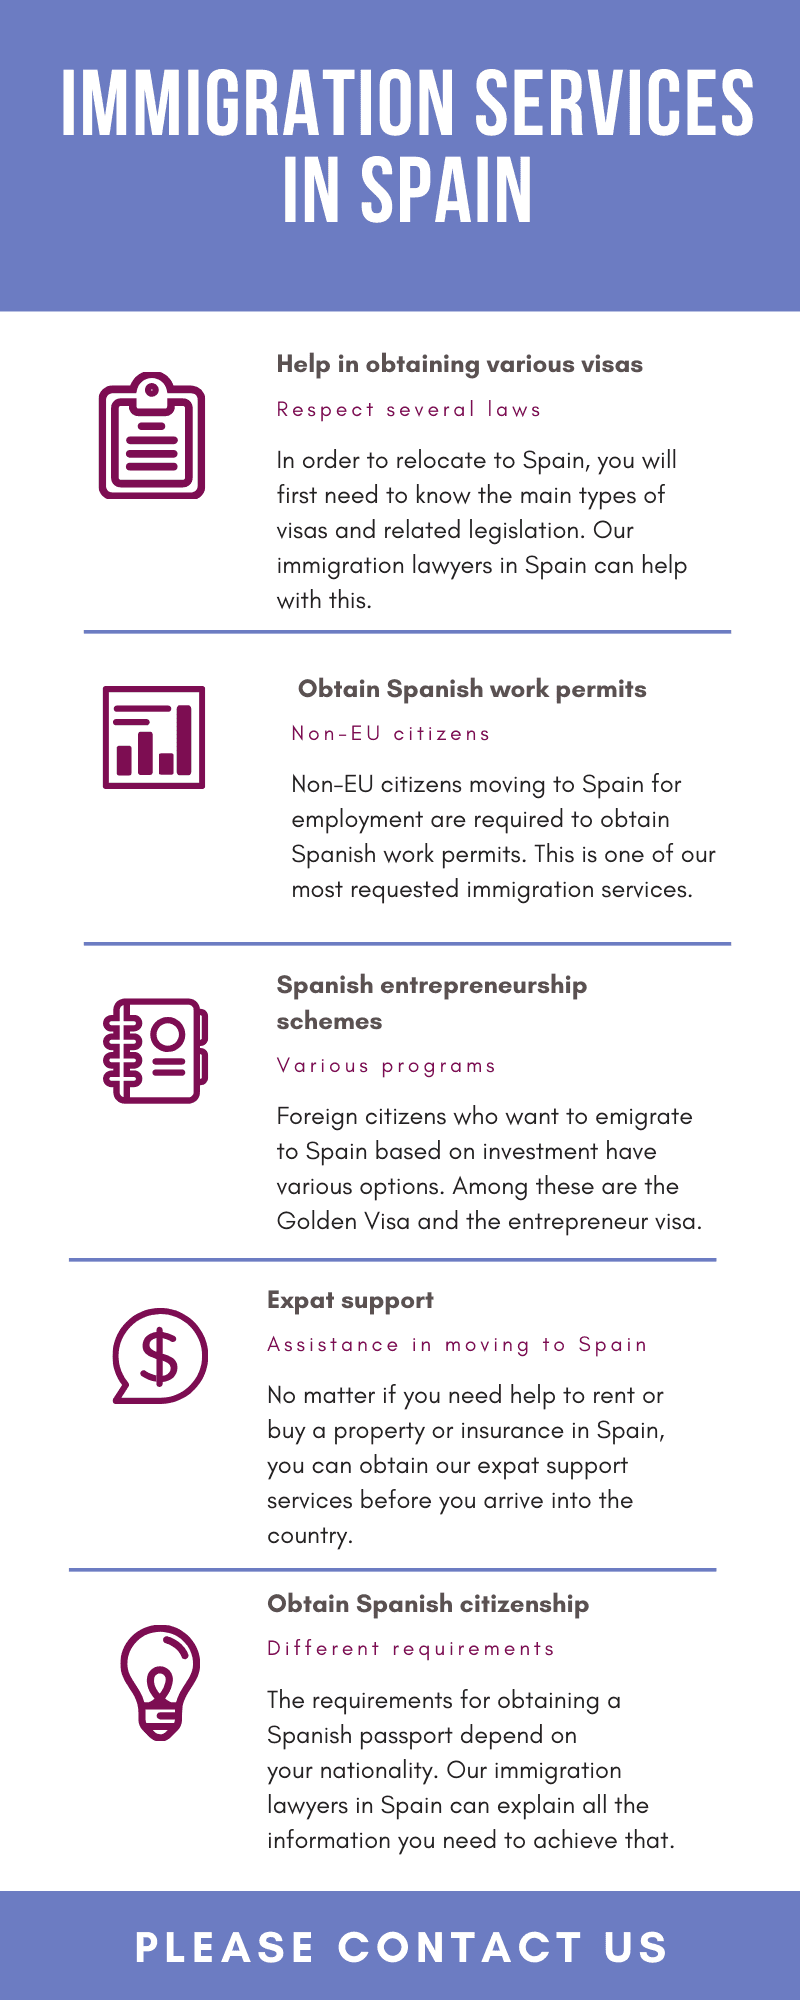 Immigration Services in Spain